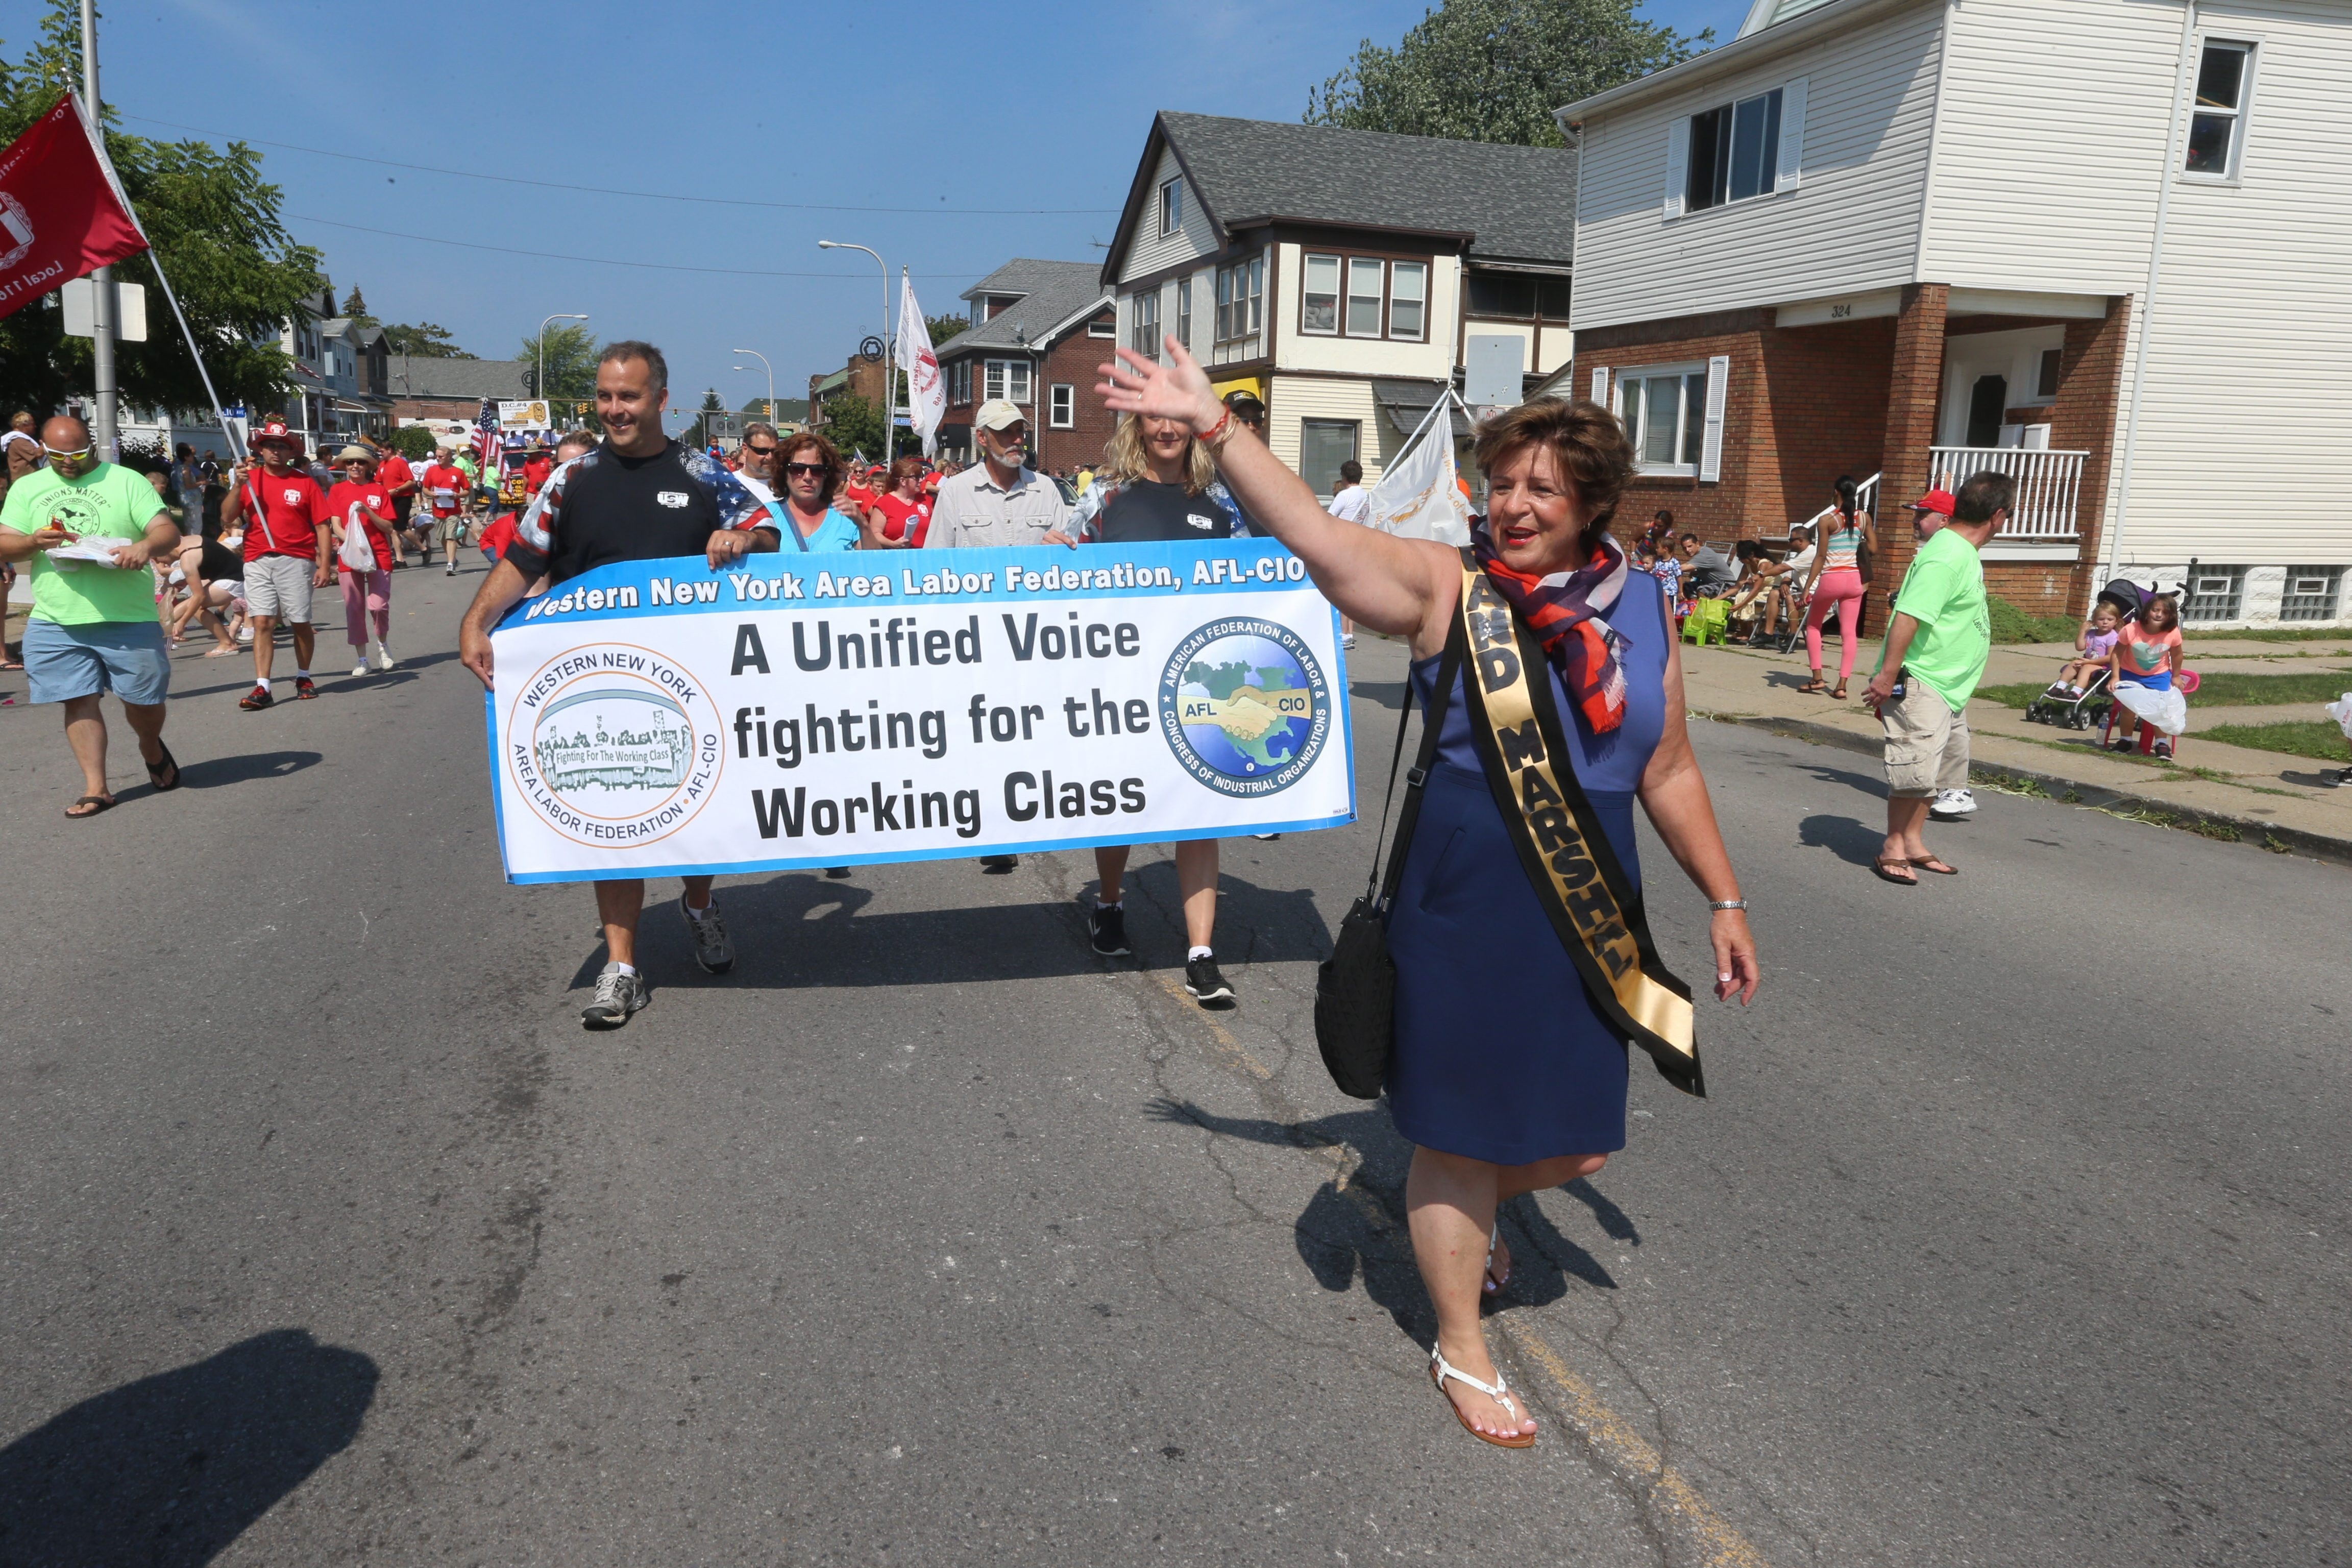 The Buffalo AFL-CIO Council celebrates Labor Day with a parade. Last year's grand marshal was Debbie Hayes, upstate director for the CWA.